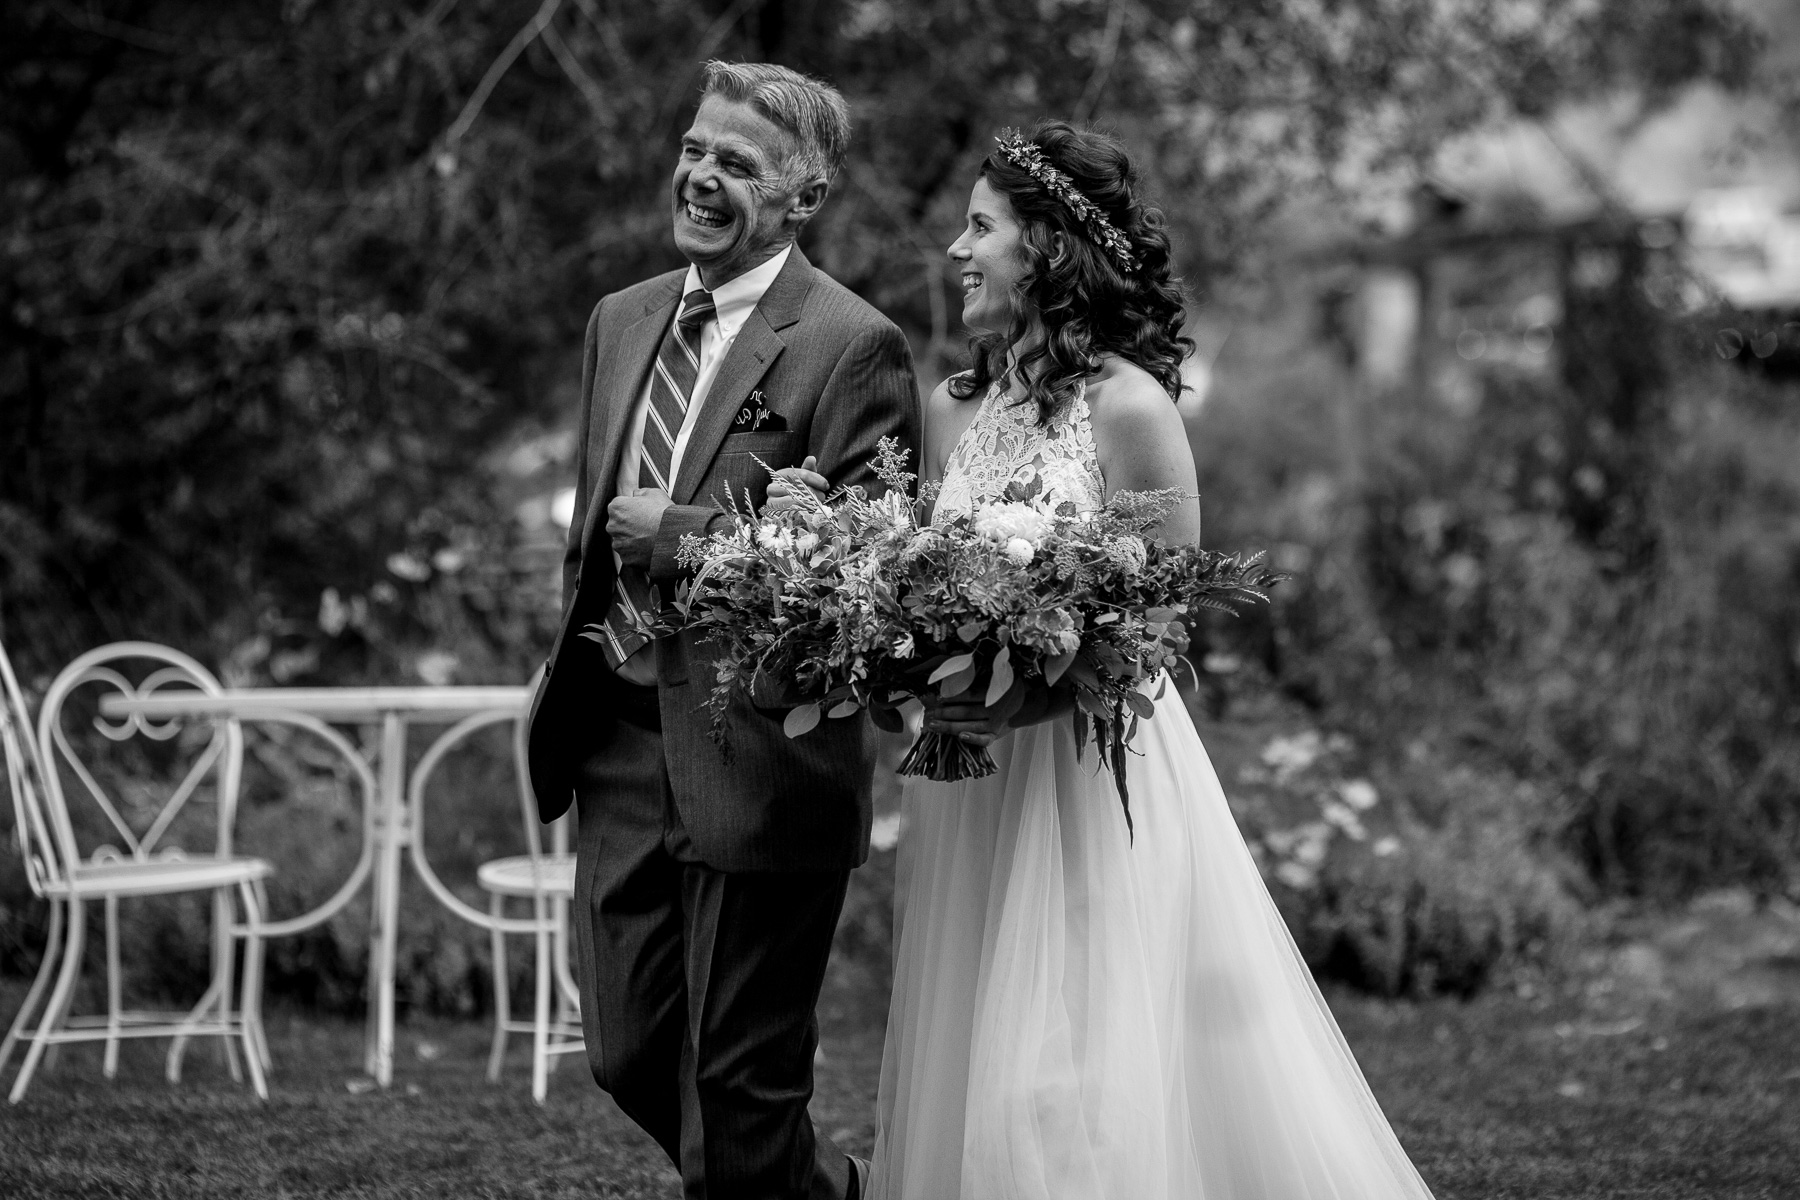 A bride and her dad walking down the aisle at an outdoor farm wedding